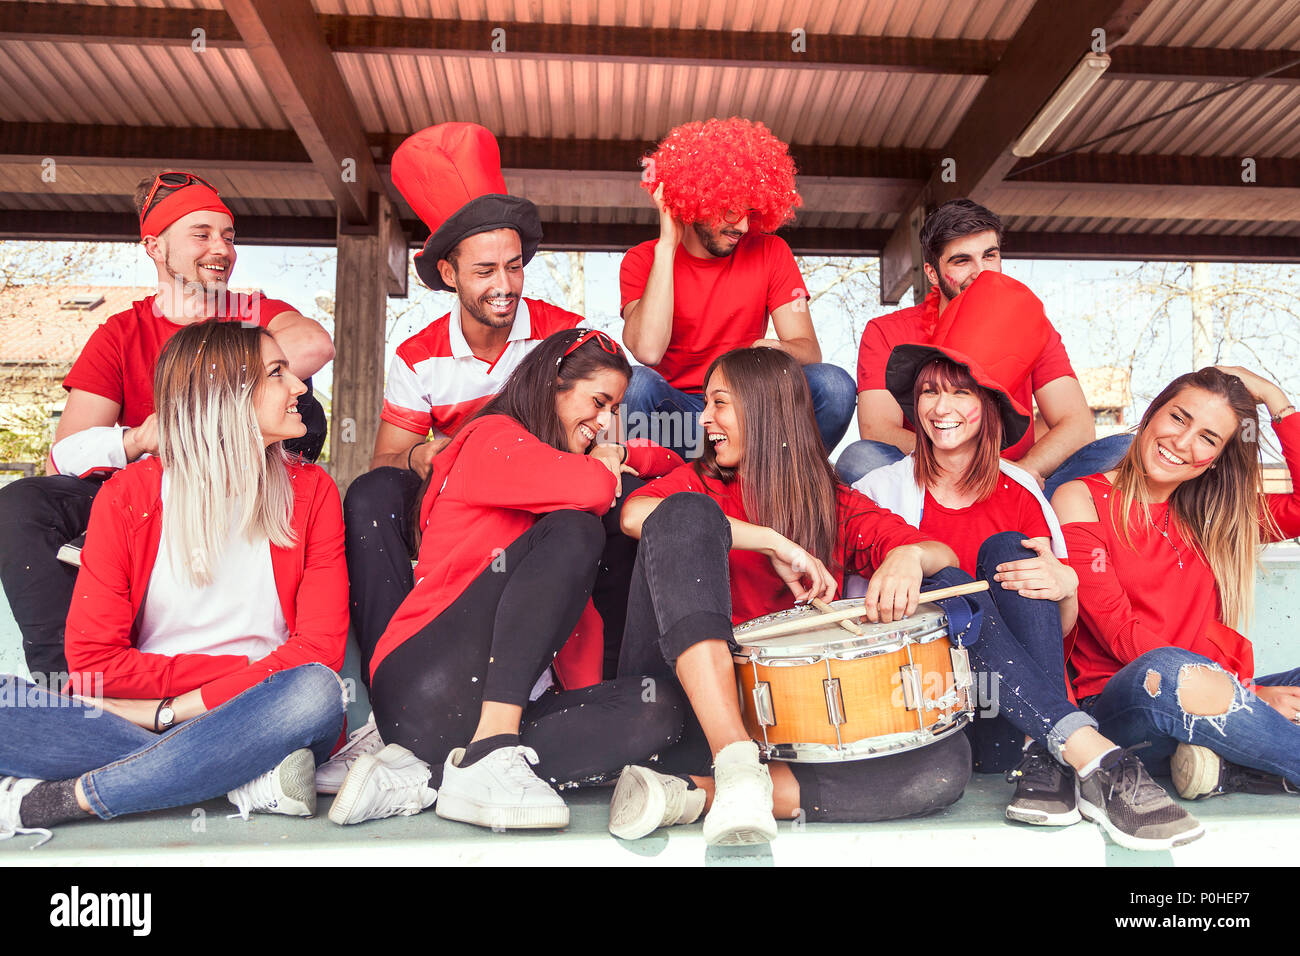 group of fans dressed in red color watching a sports event in the stands of a stadium - Stock Image